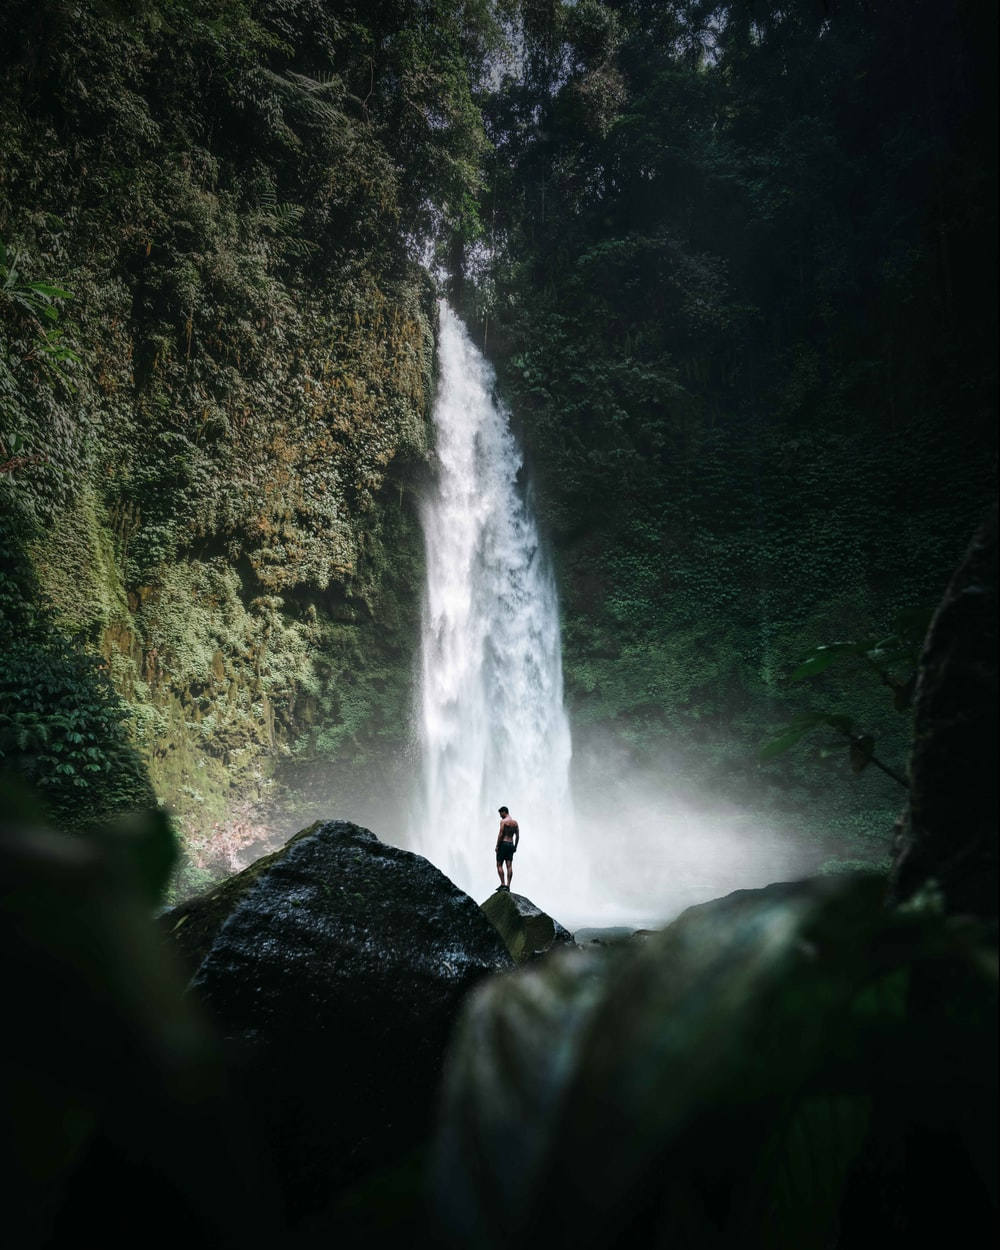 person standing on rock near waterfalls during daytime